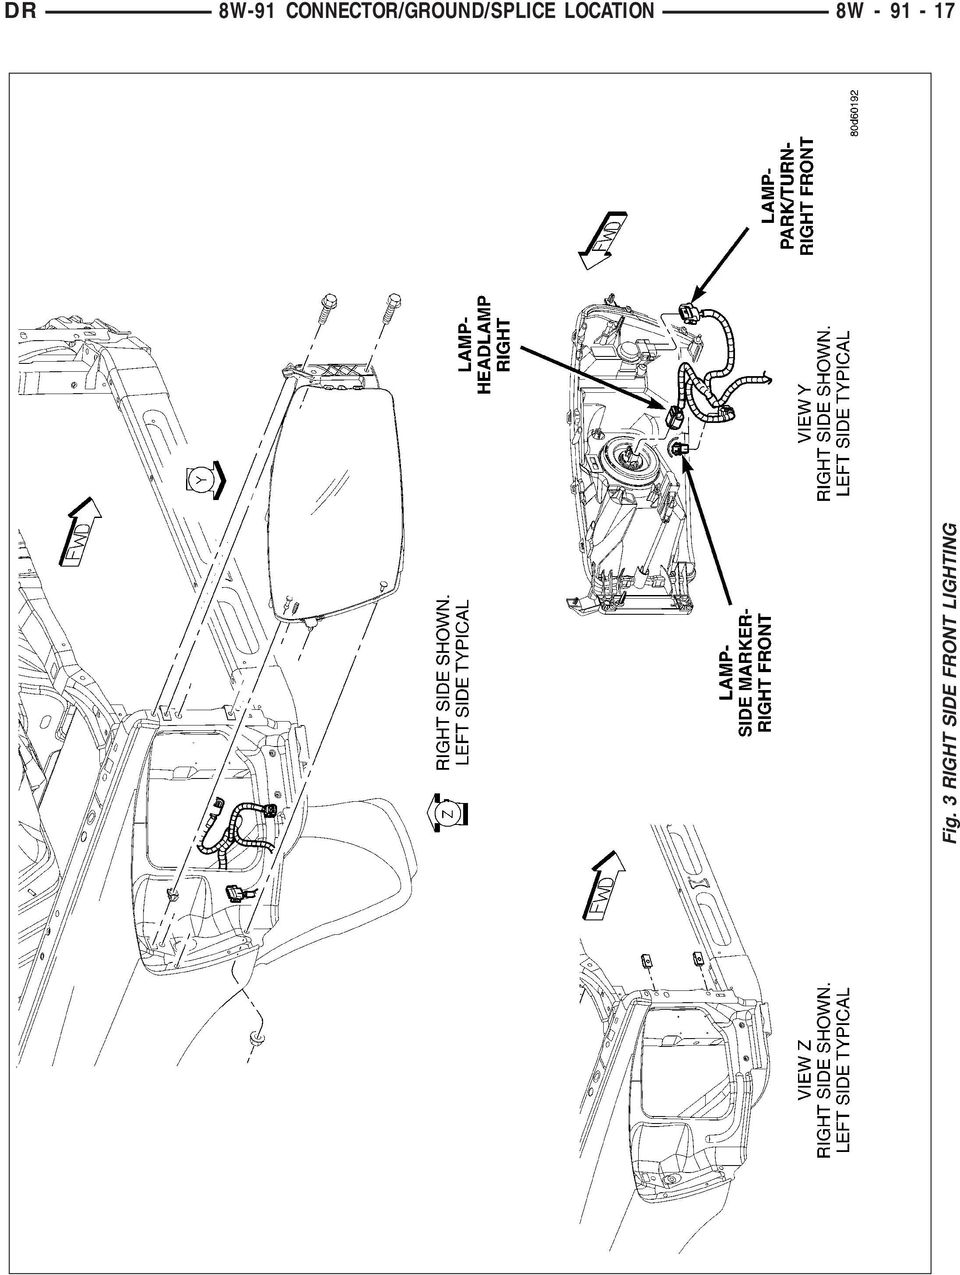 Connector Ground Splice Location Pdf 1999 Jeep Wrangler Fuel Filter 17 Dr 8w 91 Fig 3 Right Side Front Lighting